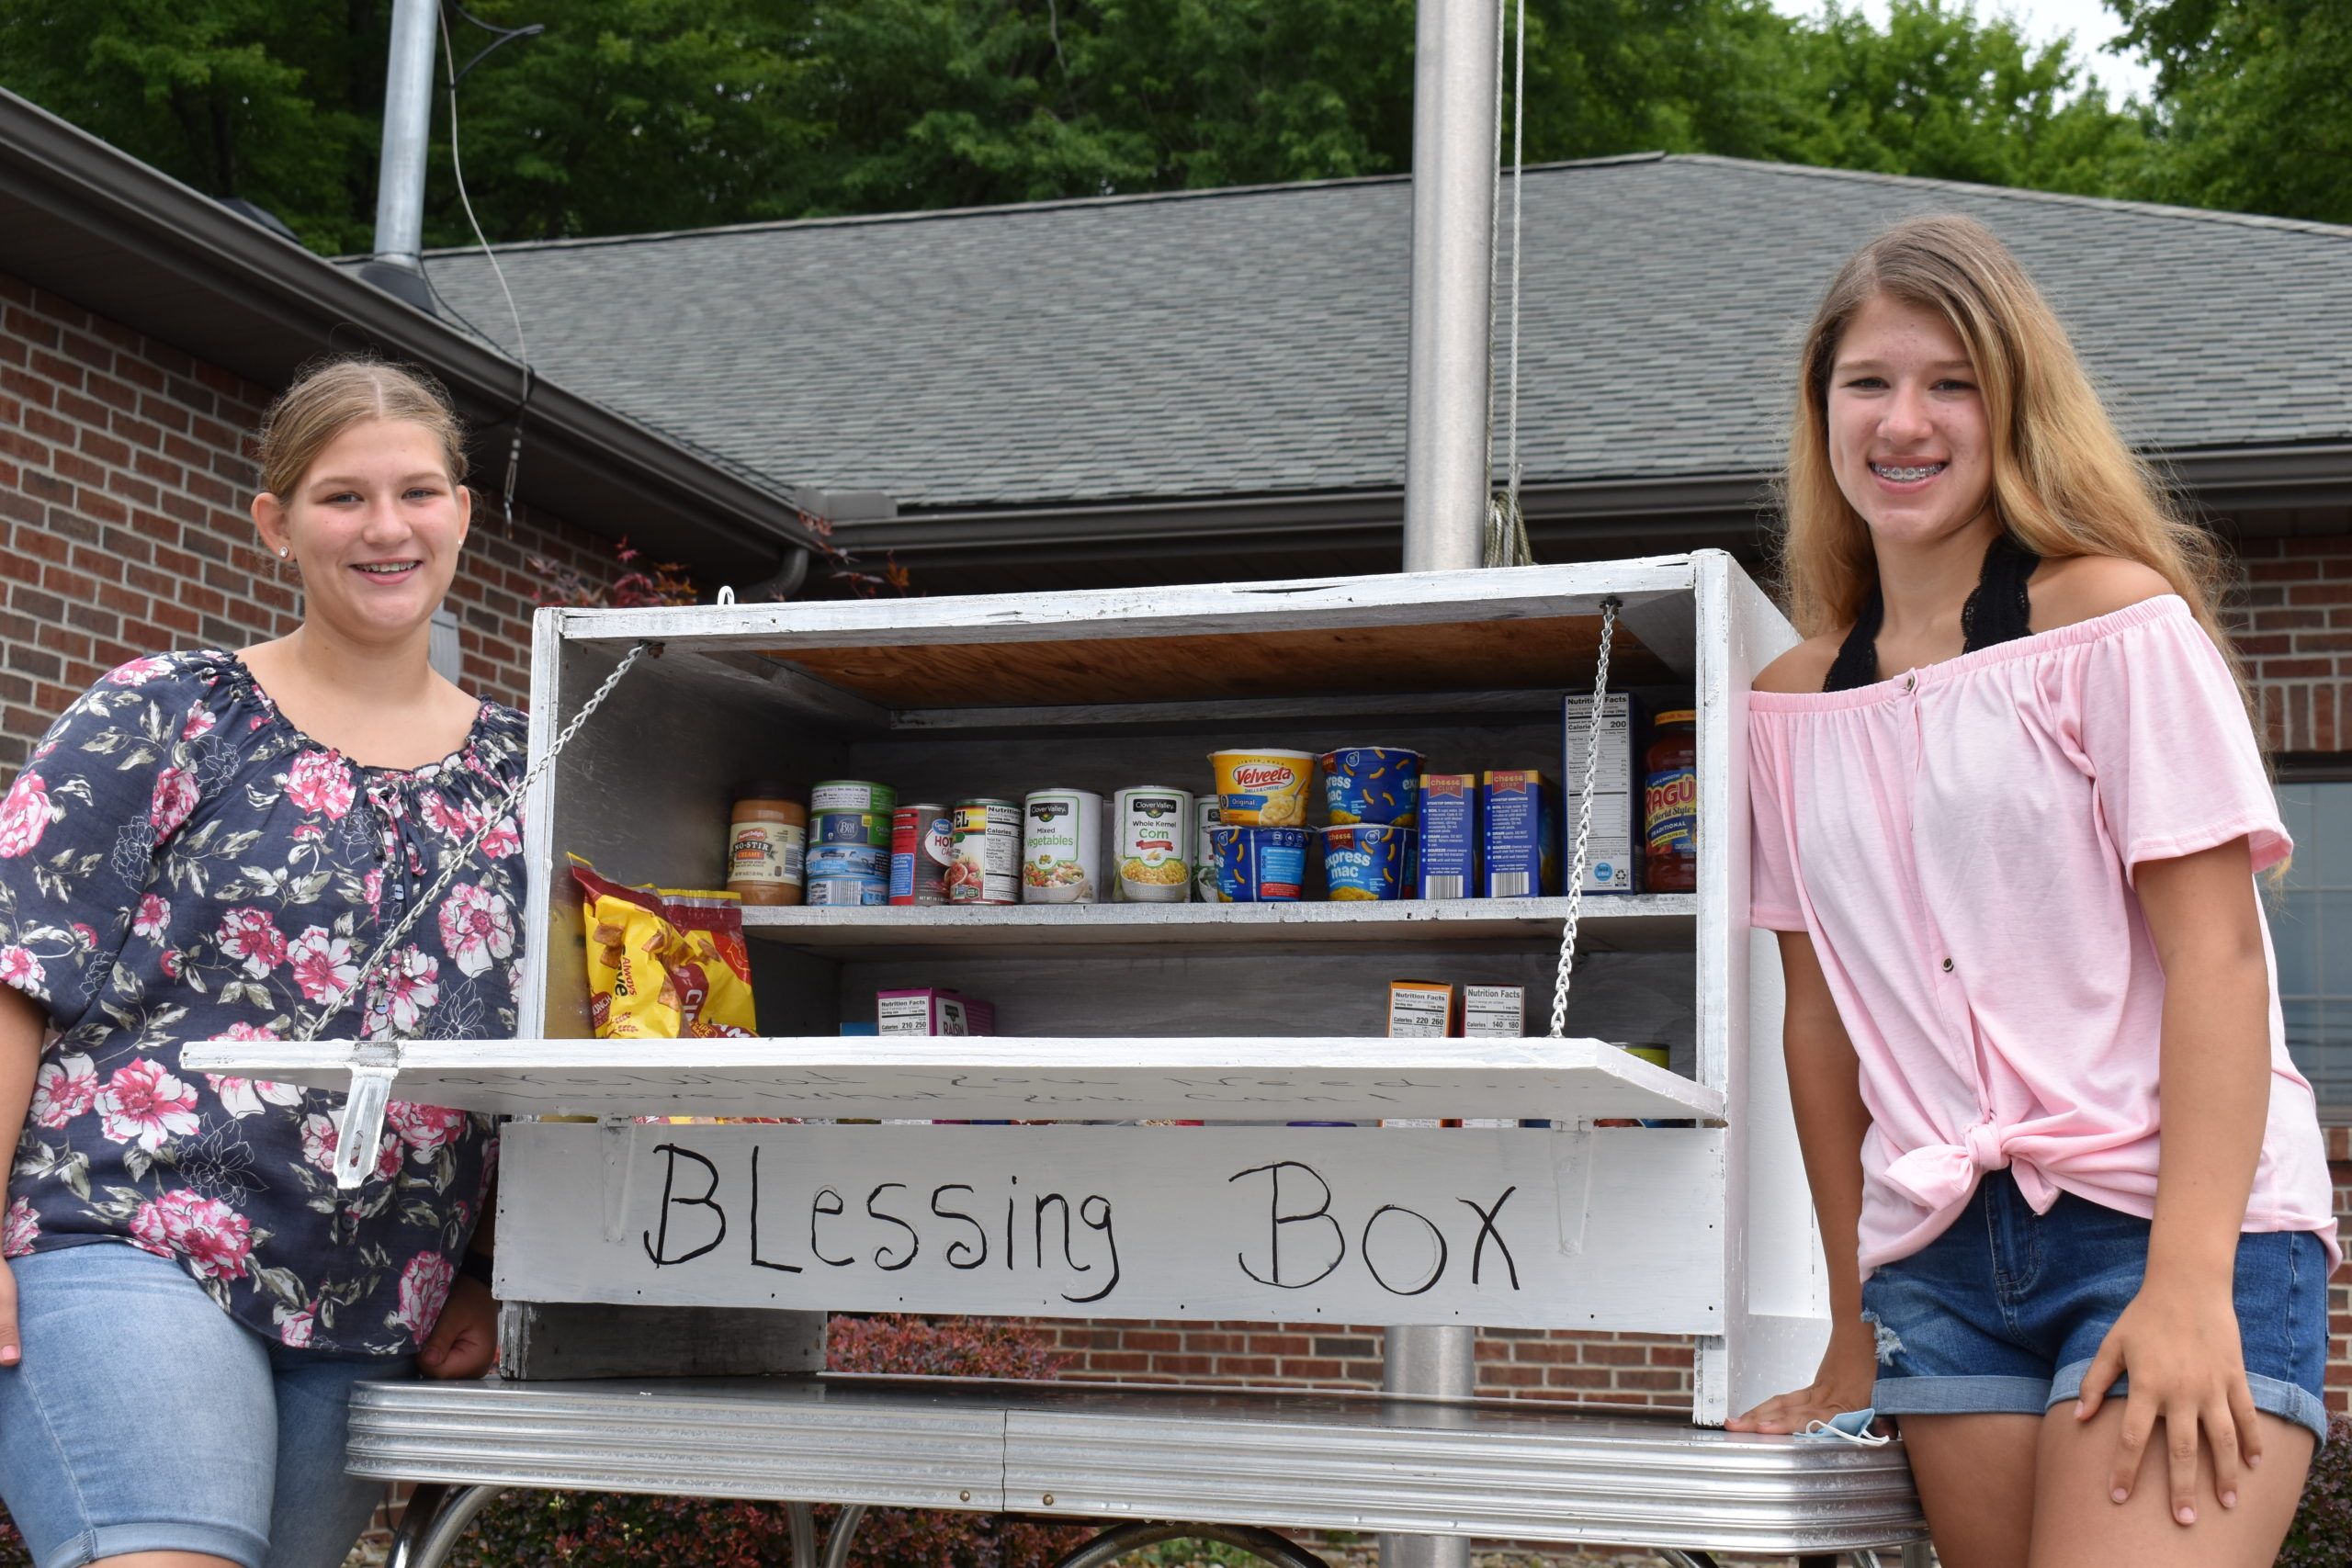 Madelyn Fonagy, left, and her twin sister Makenzie, stand by the Blessing Box containing nonperishable food items that they placed in front of the dental office of their grandfather, Dr. Joseph Fonagy, at 7159 Warren Sharon Road.